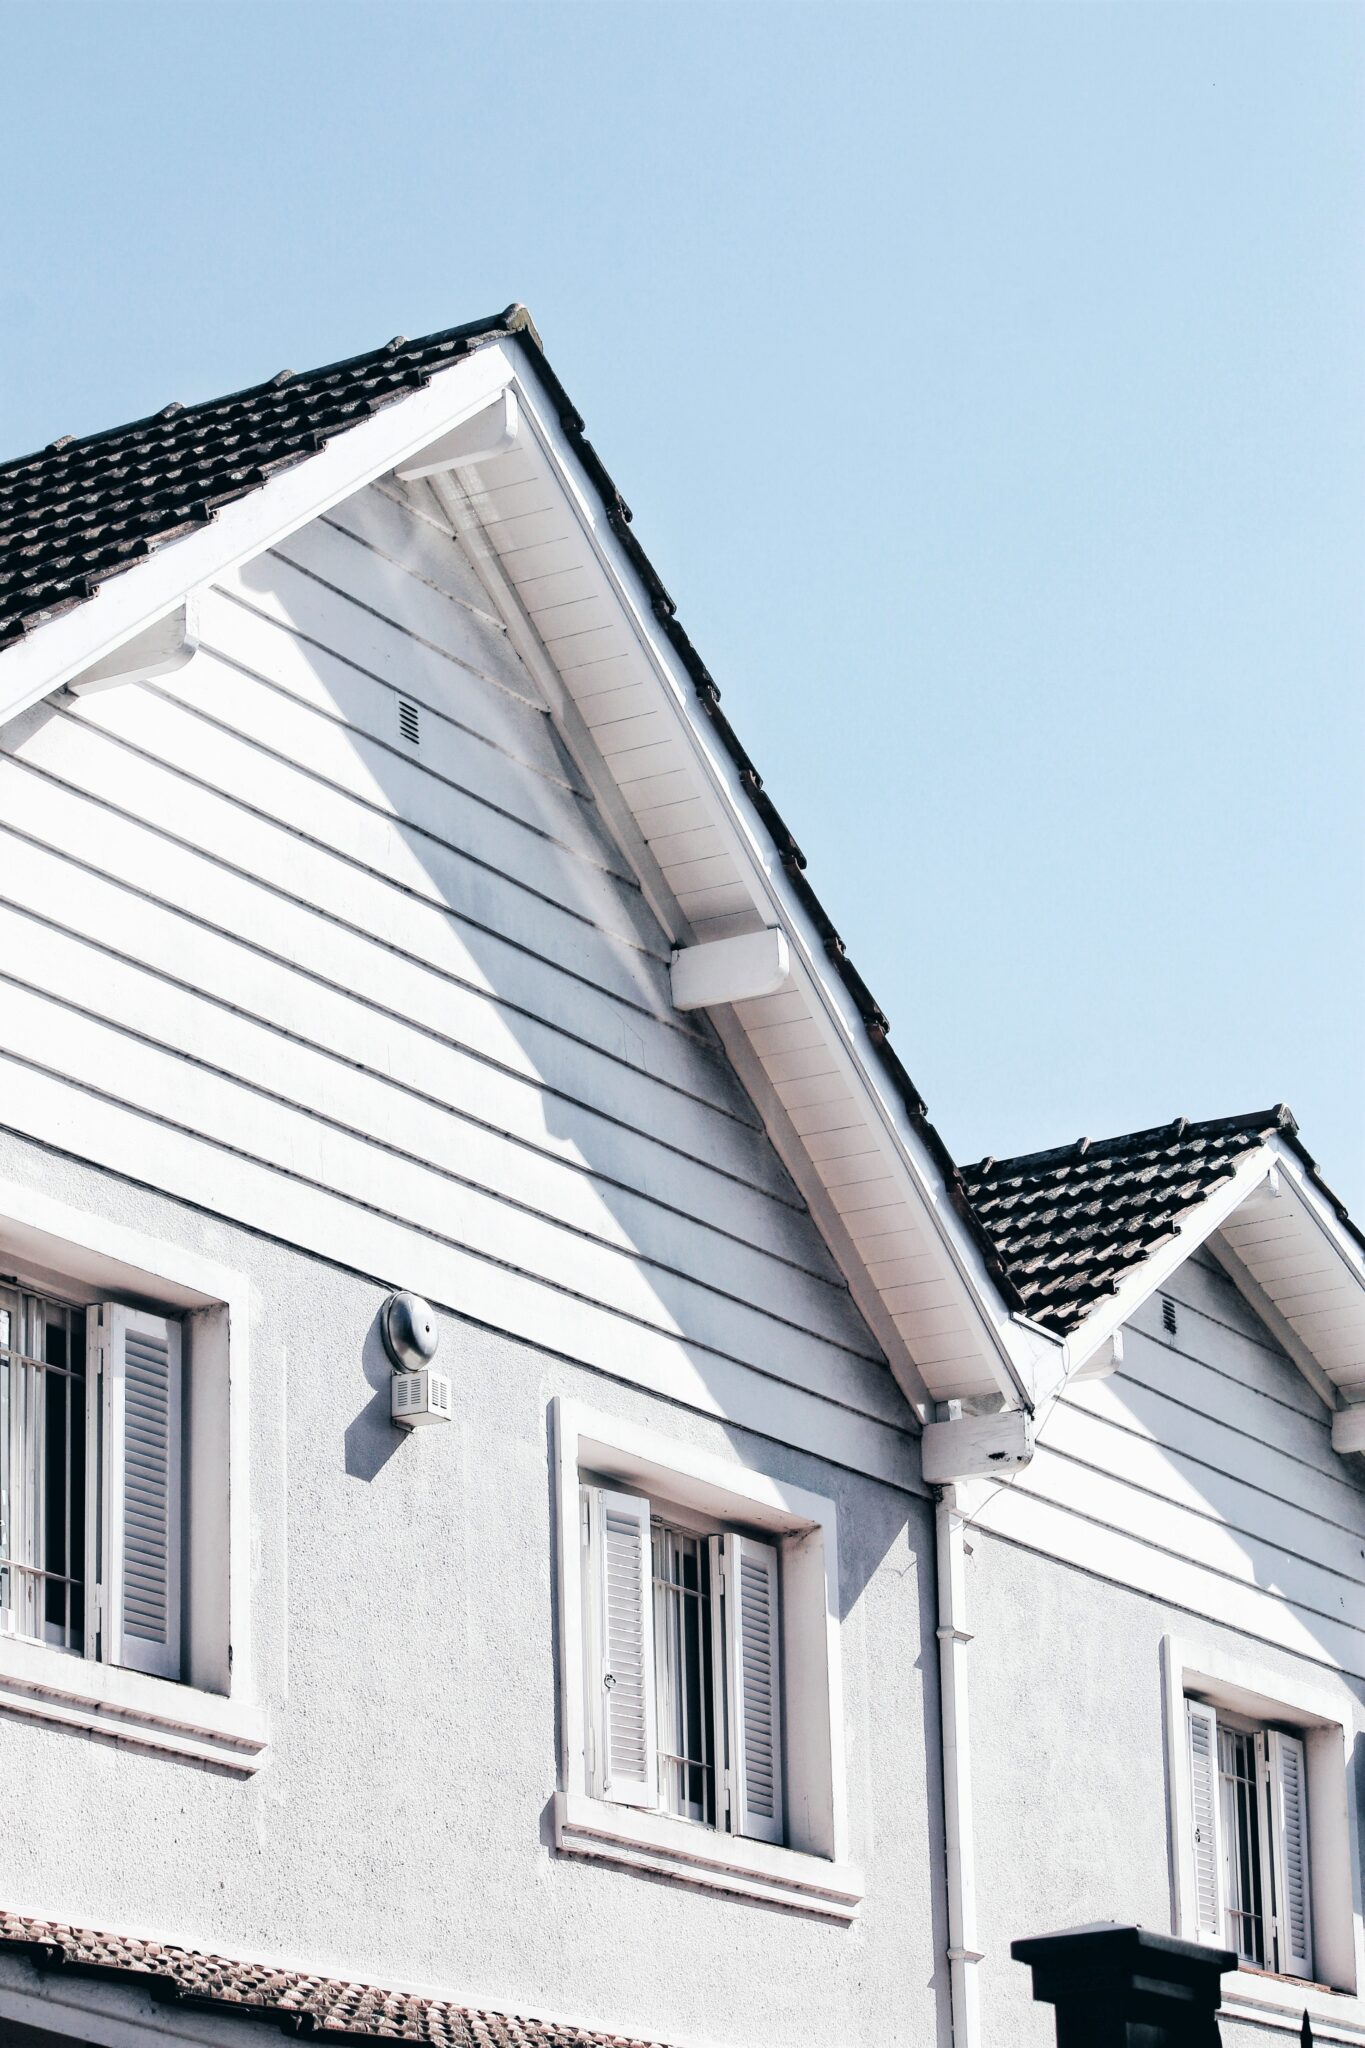 A close up of two roofs of townhouses are shown against a blue sky. This article covers tips to get your home sale ready.